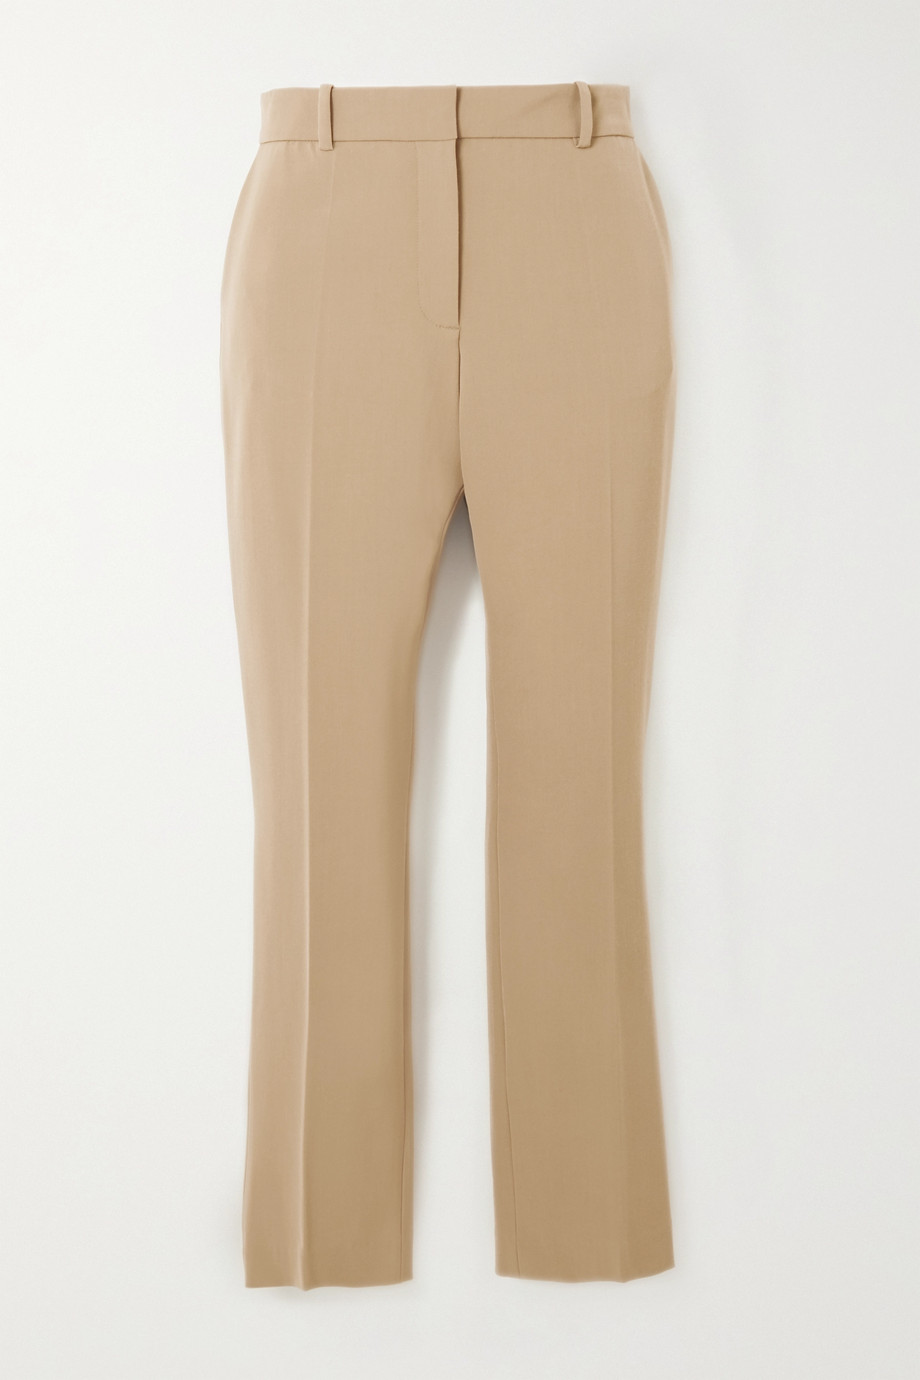 Joseph Coleman cropped wool-blend straight-leg pants